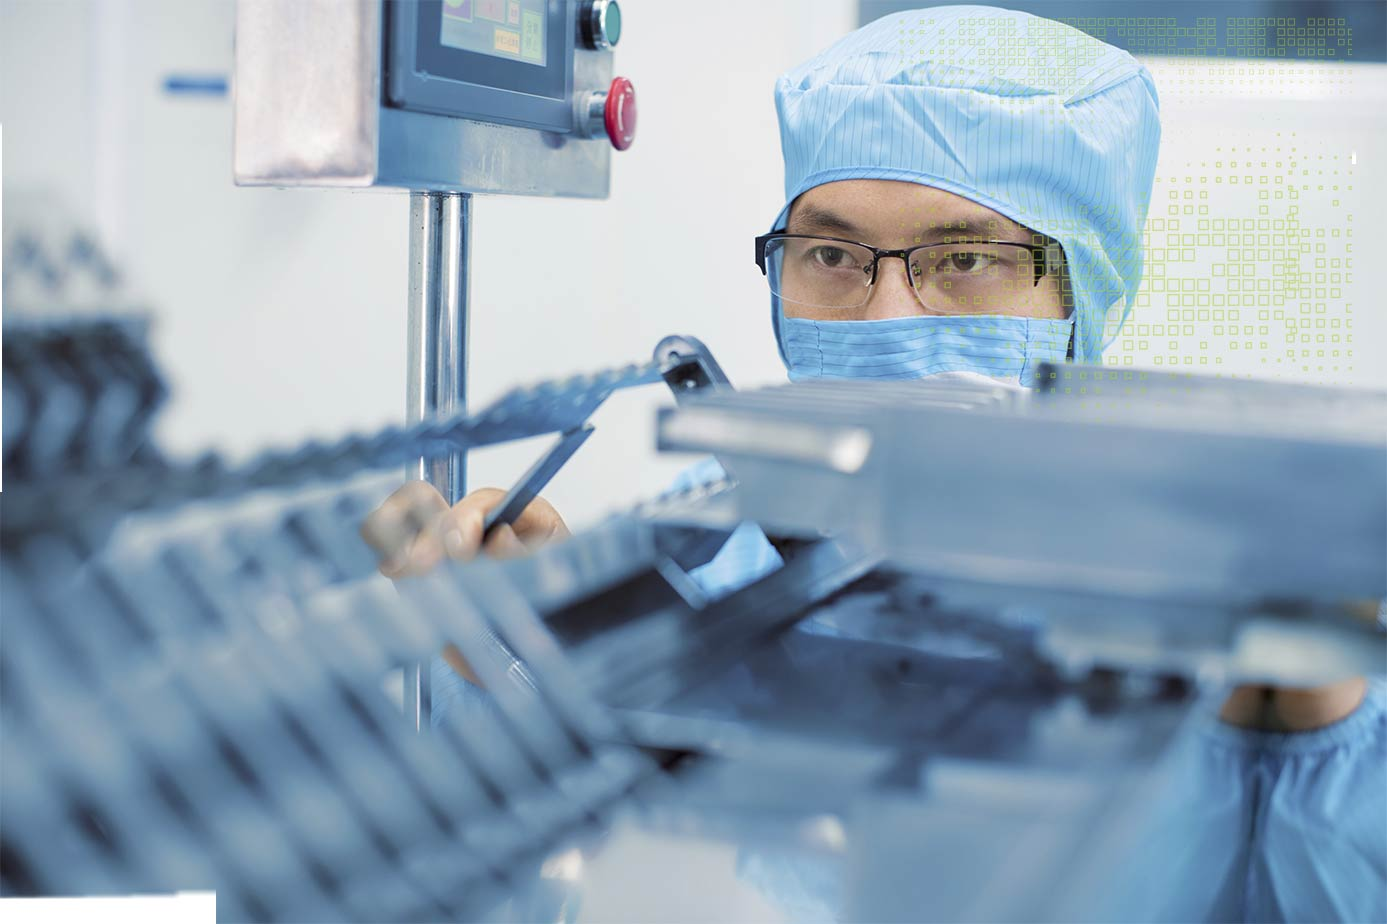 The choice for medical device OEMs